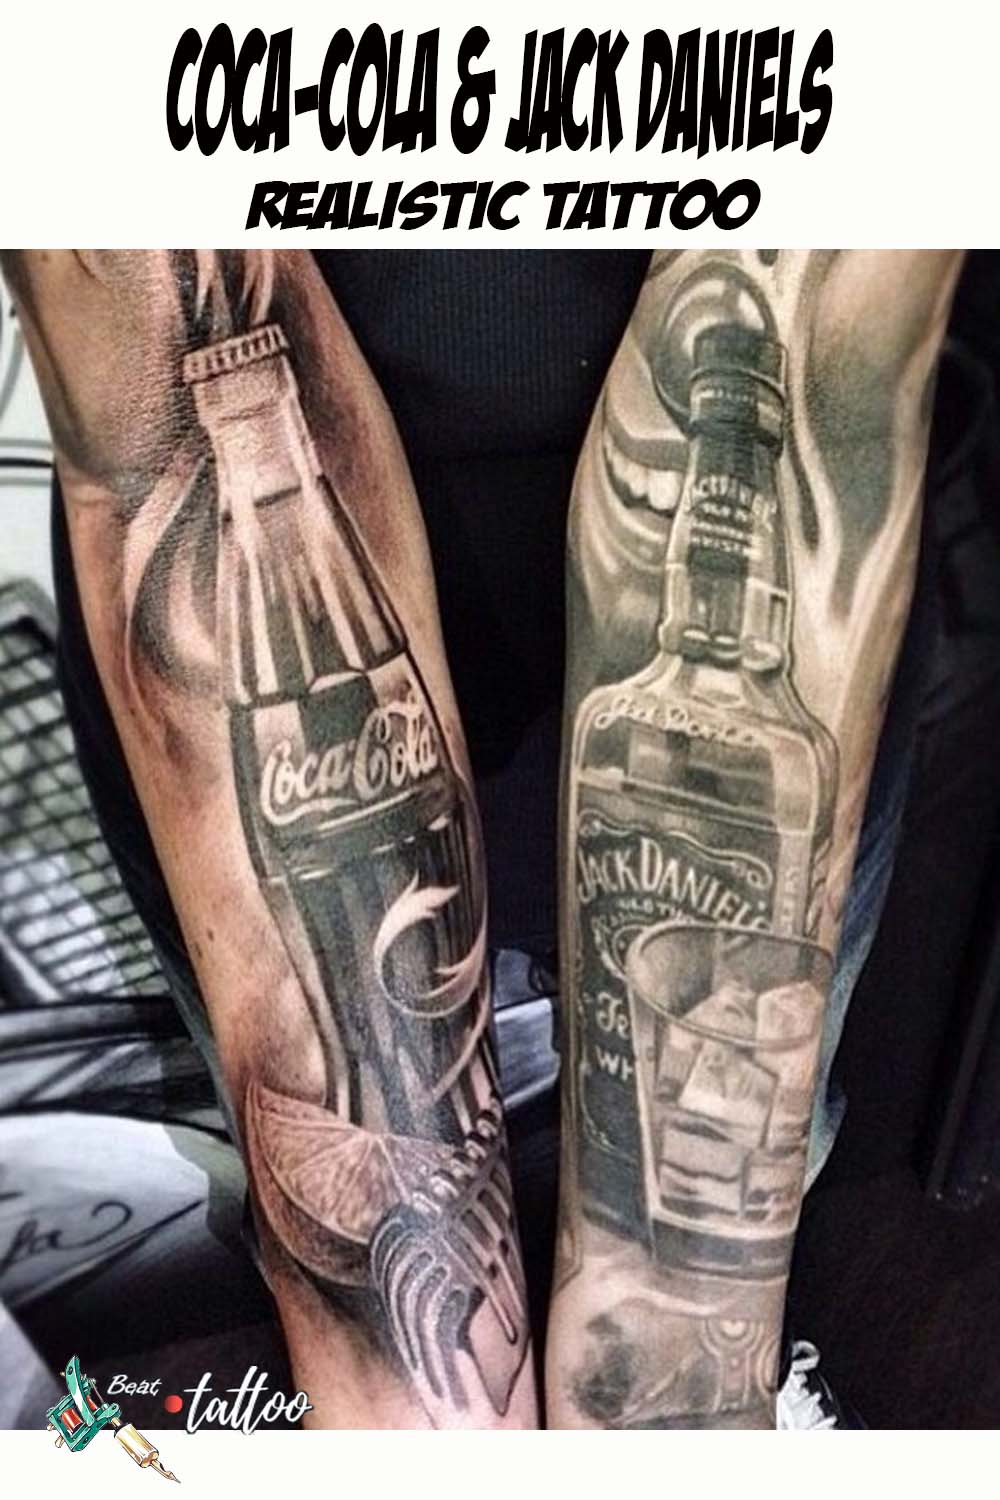 Coca-cola & Jack Daniels Sleeve Tattoo